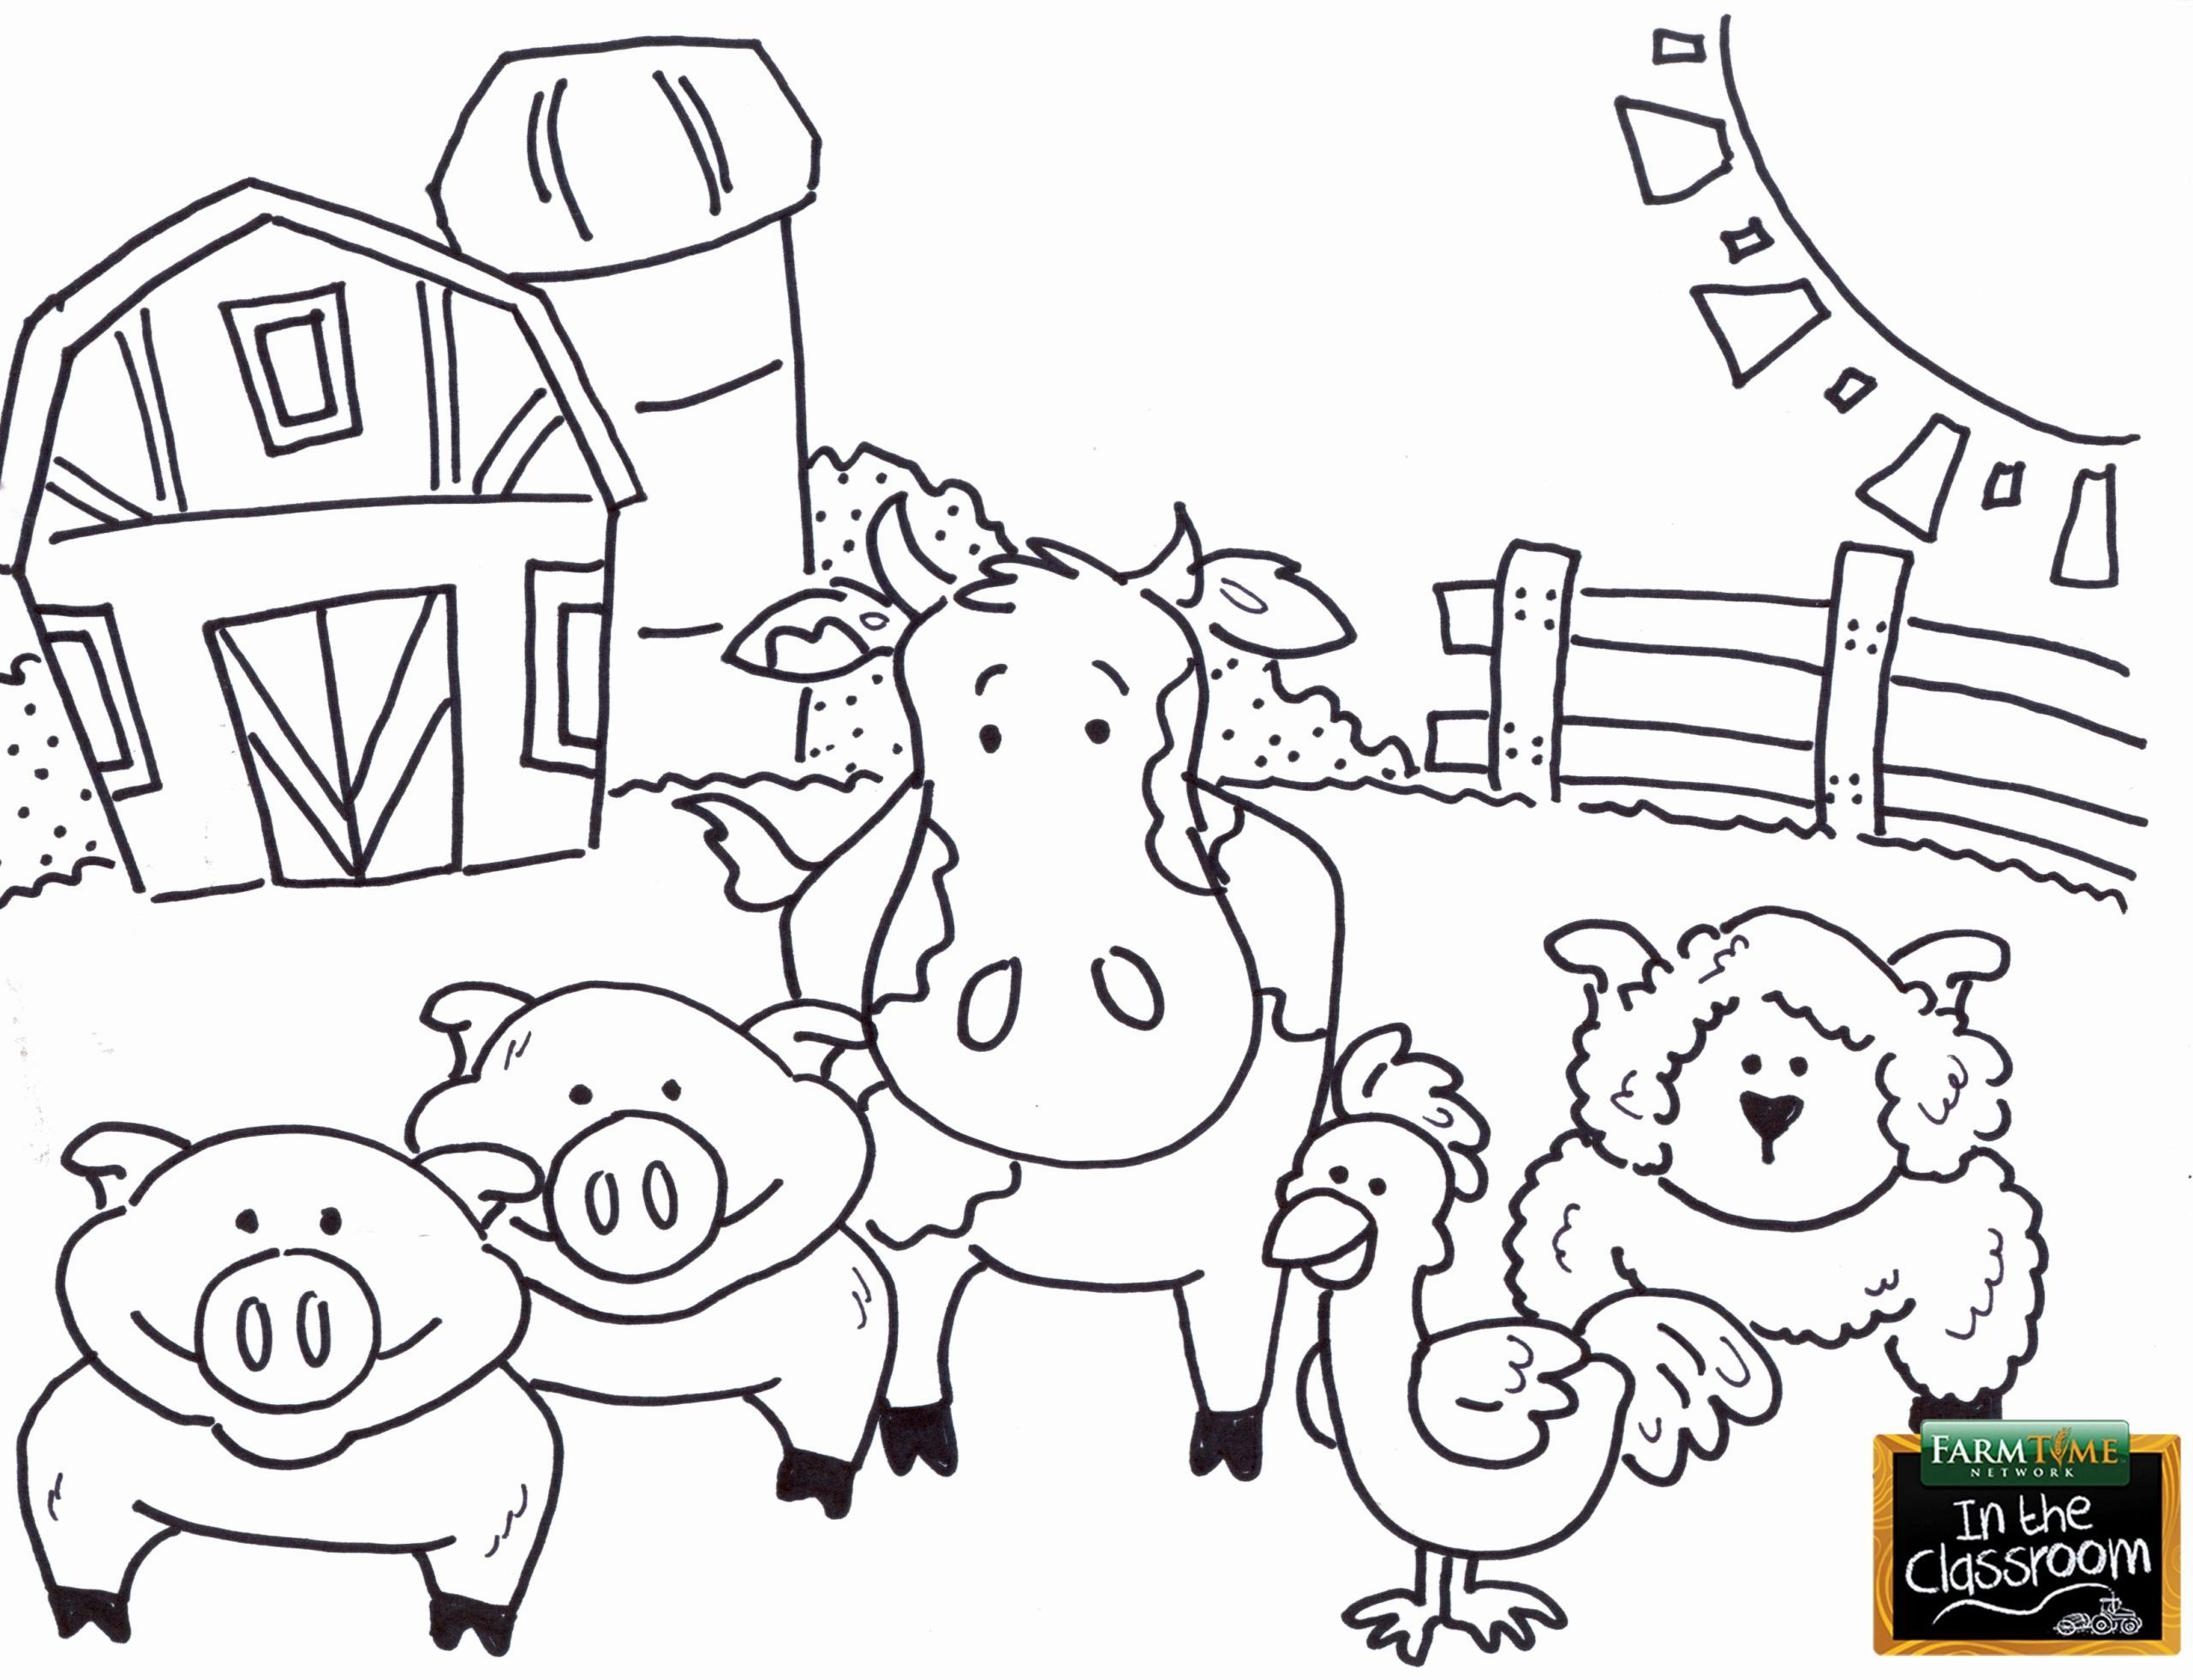 Barnyard Animal Coloring Pages Inspirational Pin By Caiah Wagner